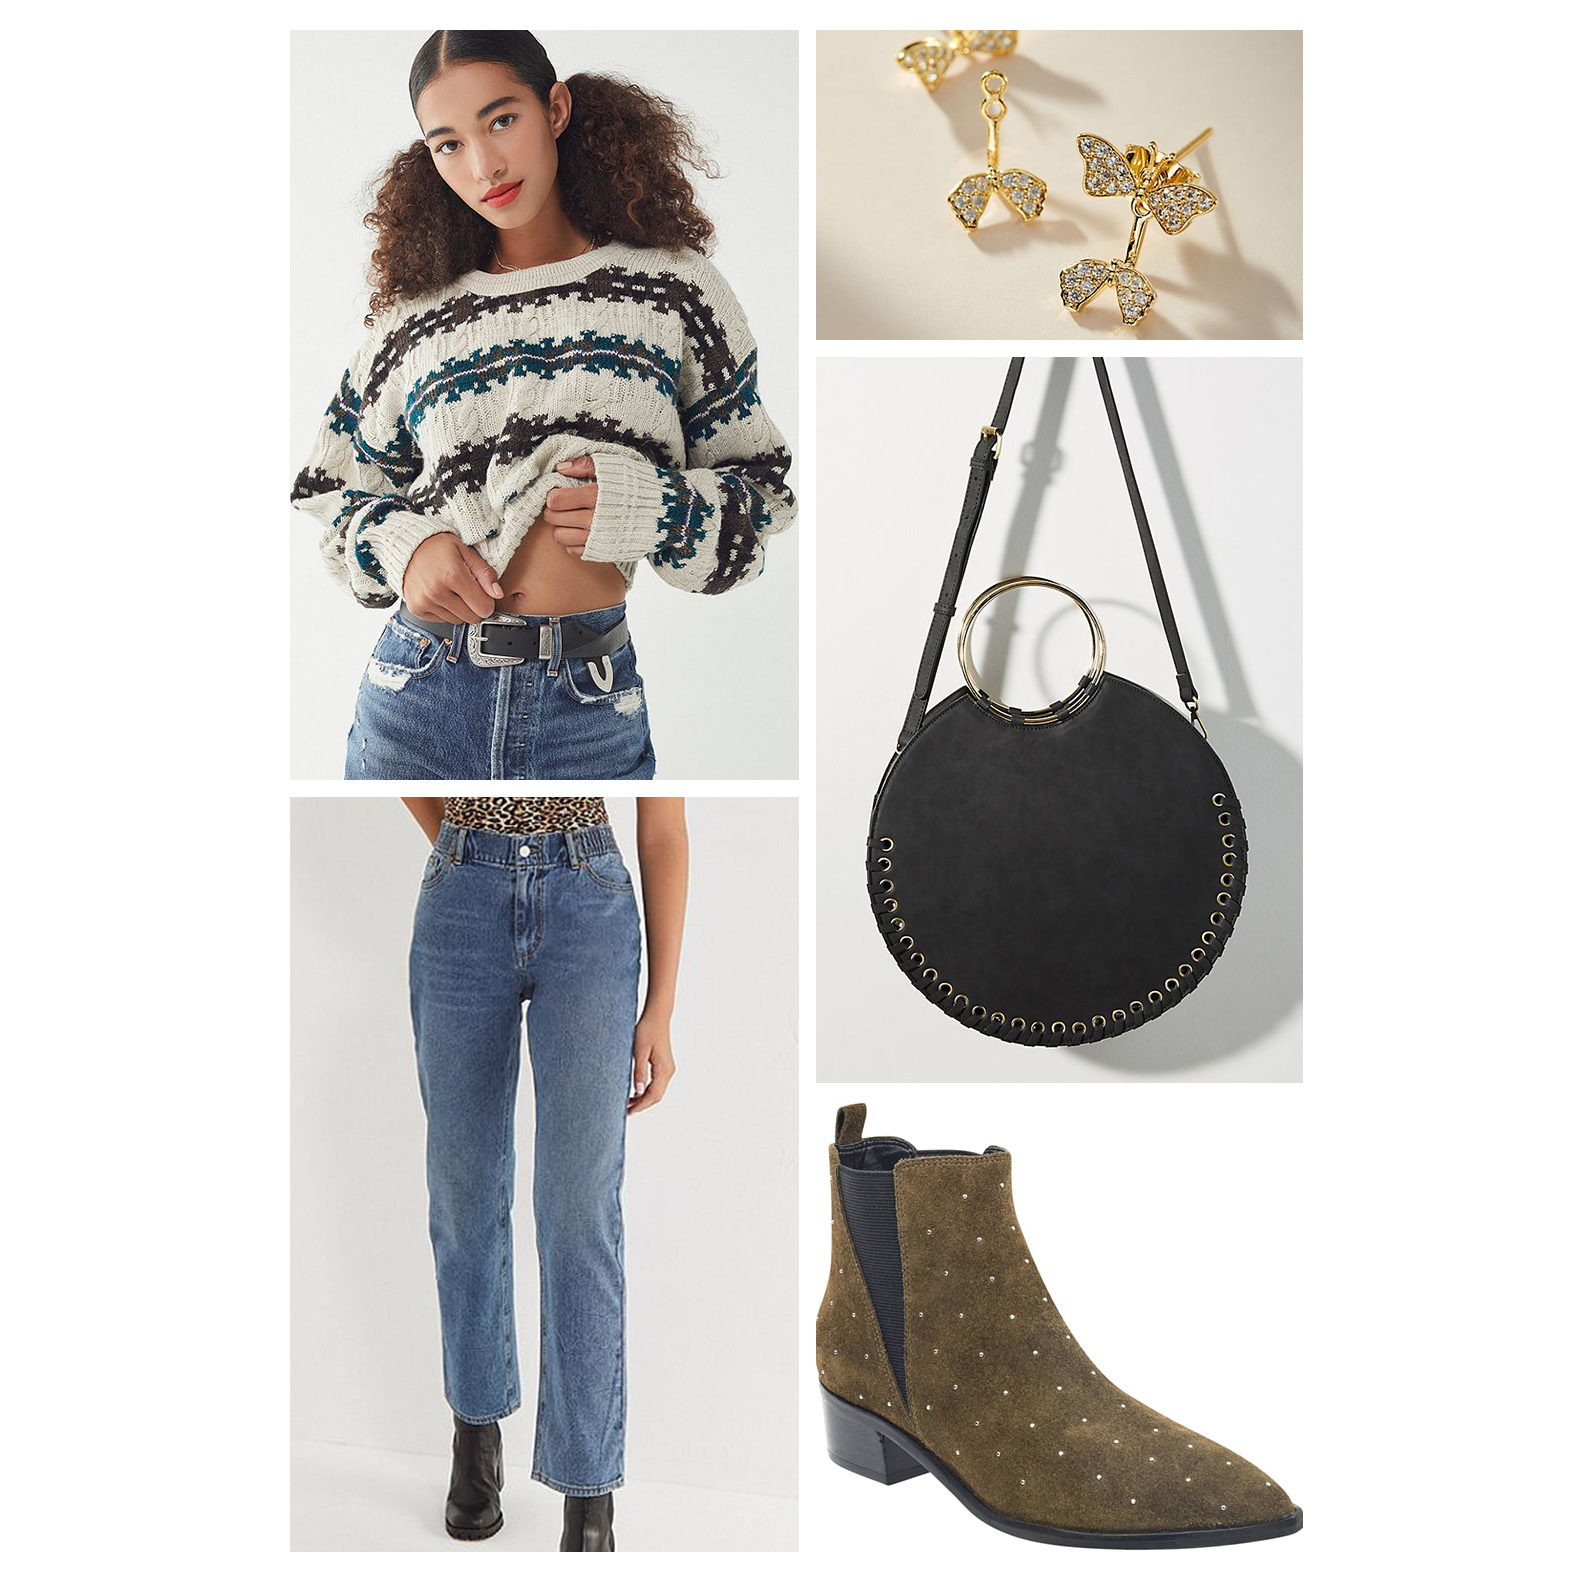 fall-autumn-outfit-weekend-2018-fashion-ideas-boyfriend-mom-jeans-olive-green-booties-gold-stud-earrings-white-chunky-stripe-sweater-black-bag.jpg